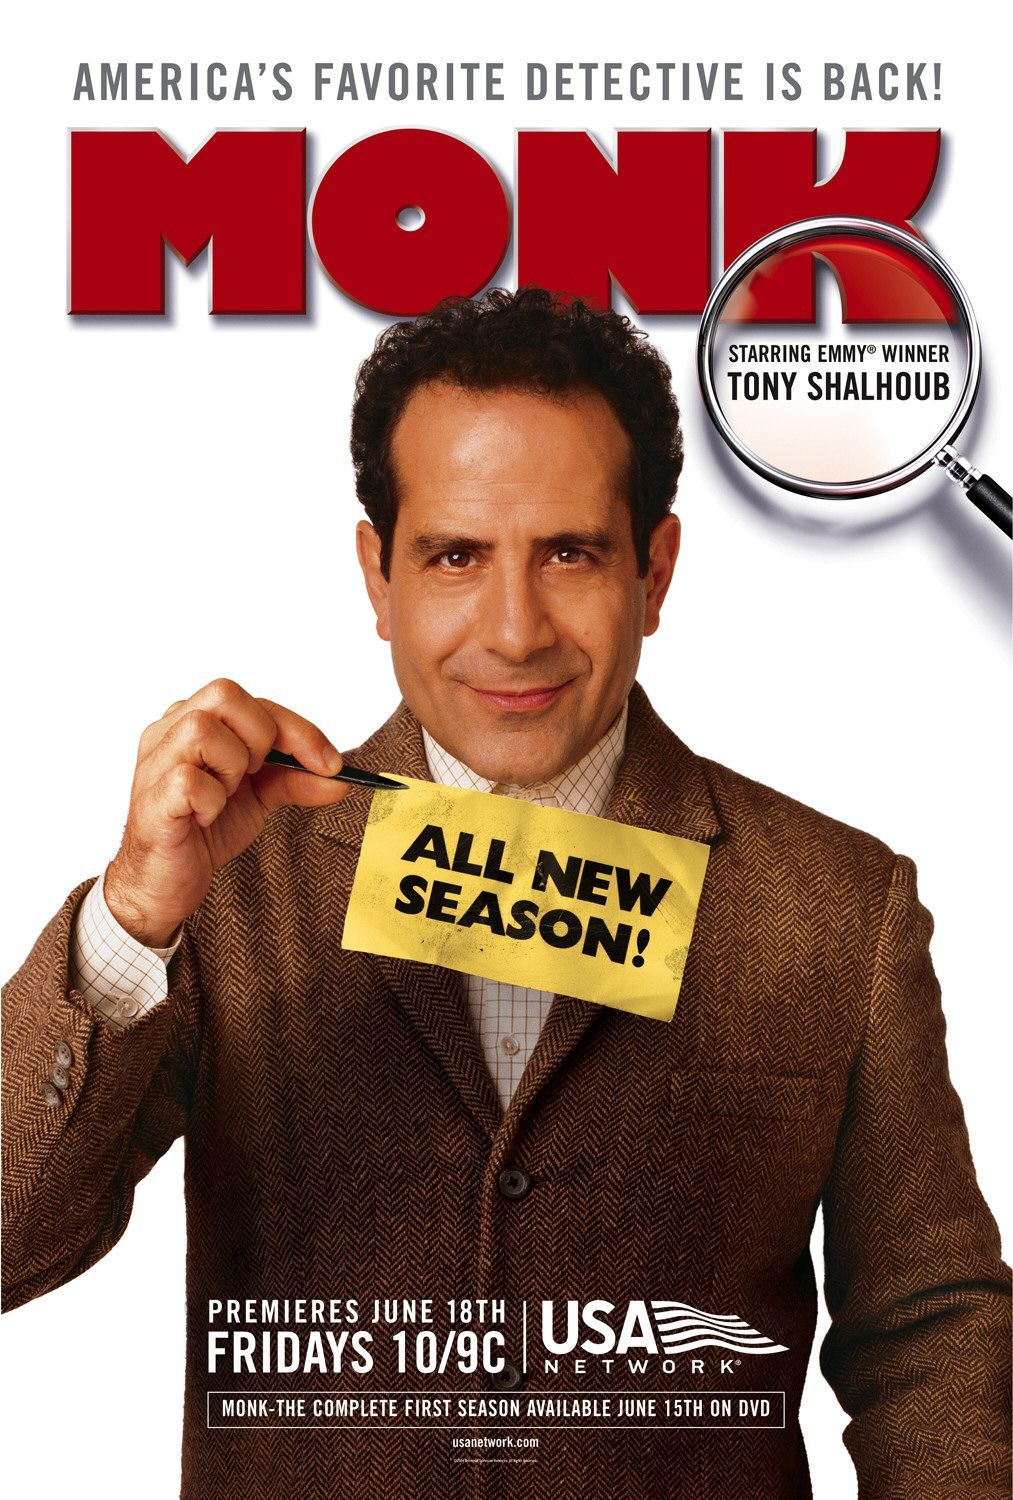 an analysis of the american comedy drama show monk Free television drama it is a comedy, drama and mystery series the show takes place on a fictional episodes of many television shows there is american.